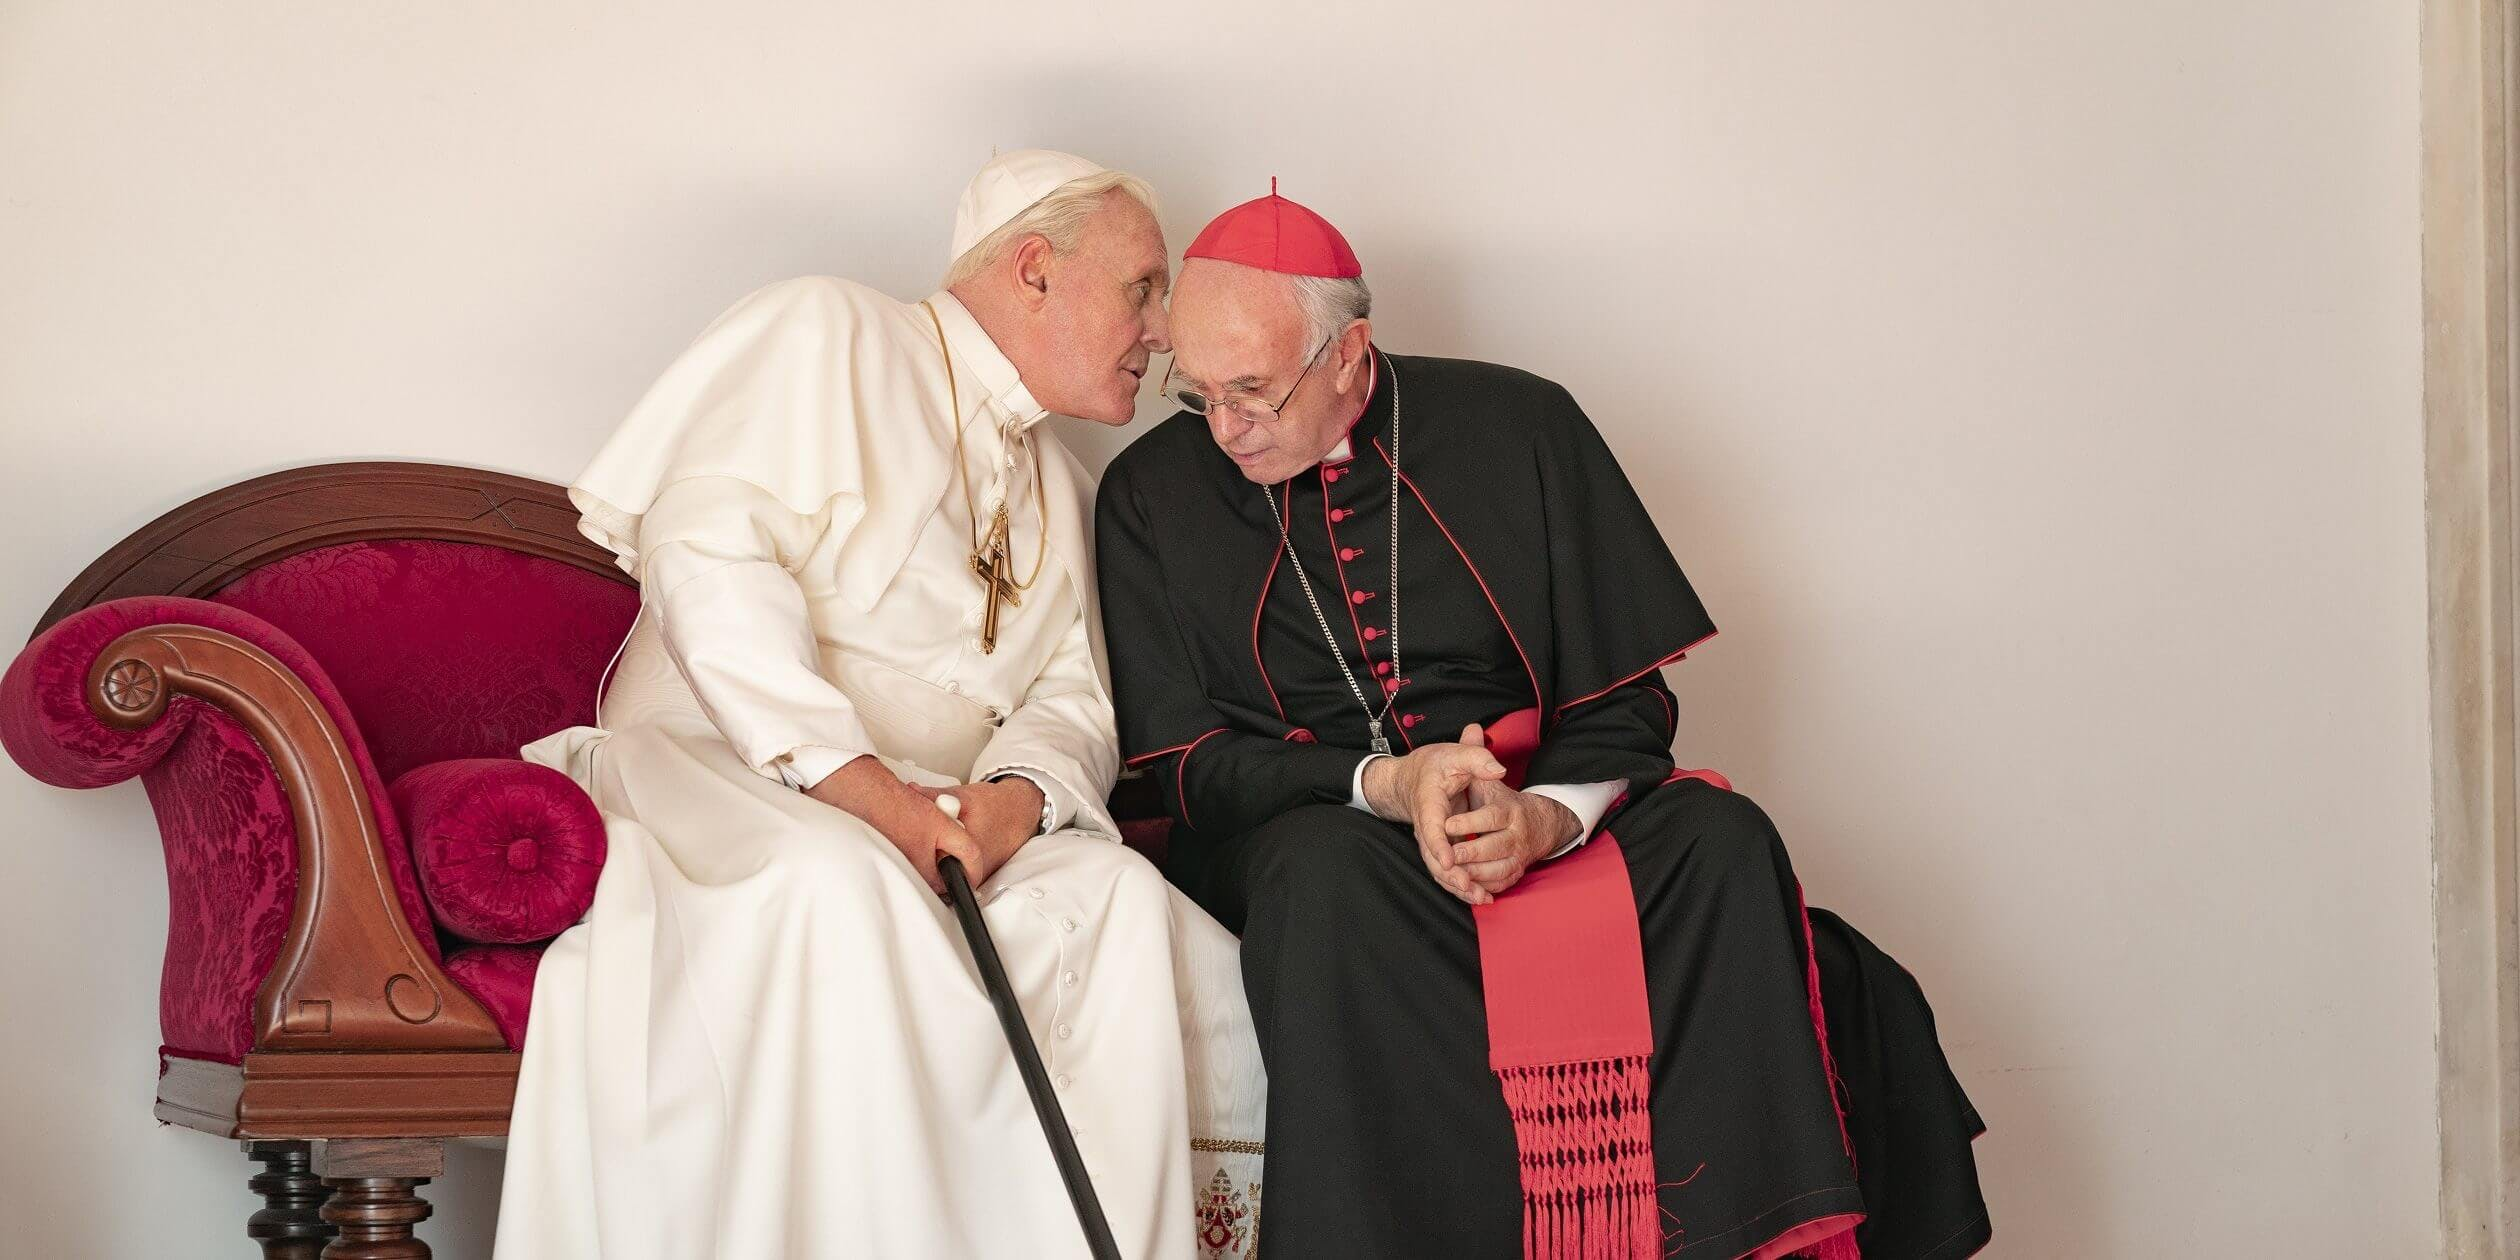 movies based on true stories on Netflix - the Two Popes